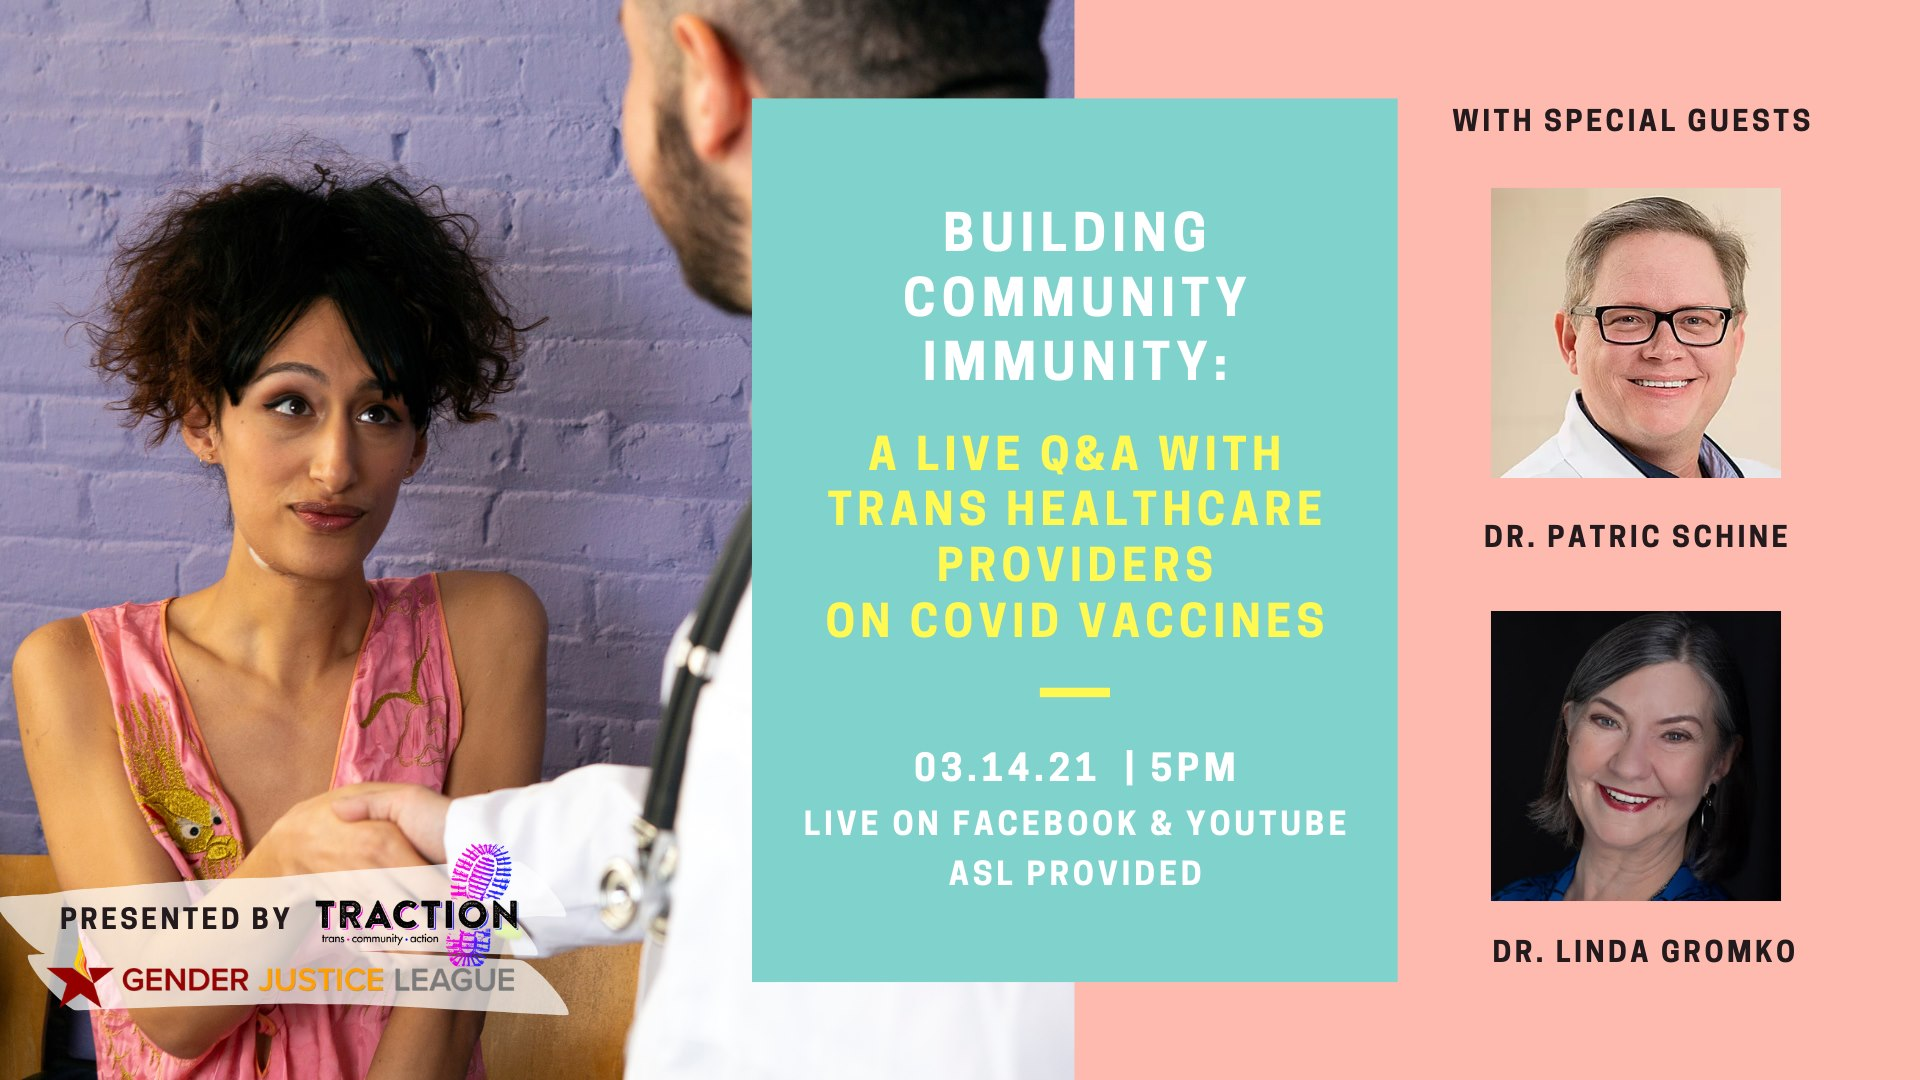 Building Community Immunity: A Live Q&A with Trans Healthcare Providers on COVID Vaccines